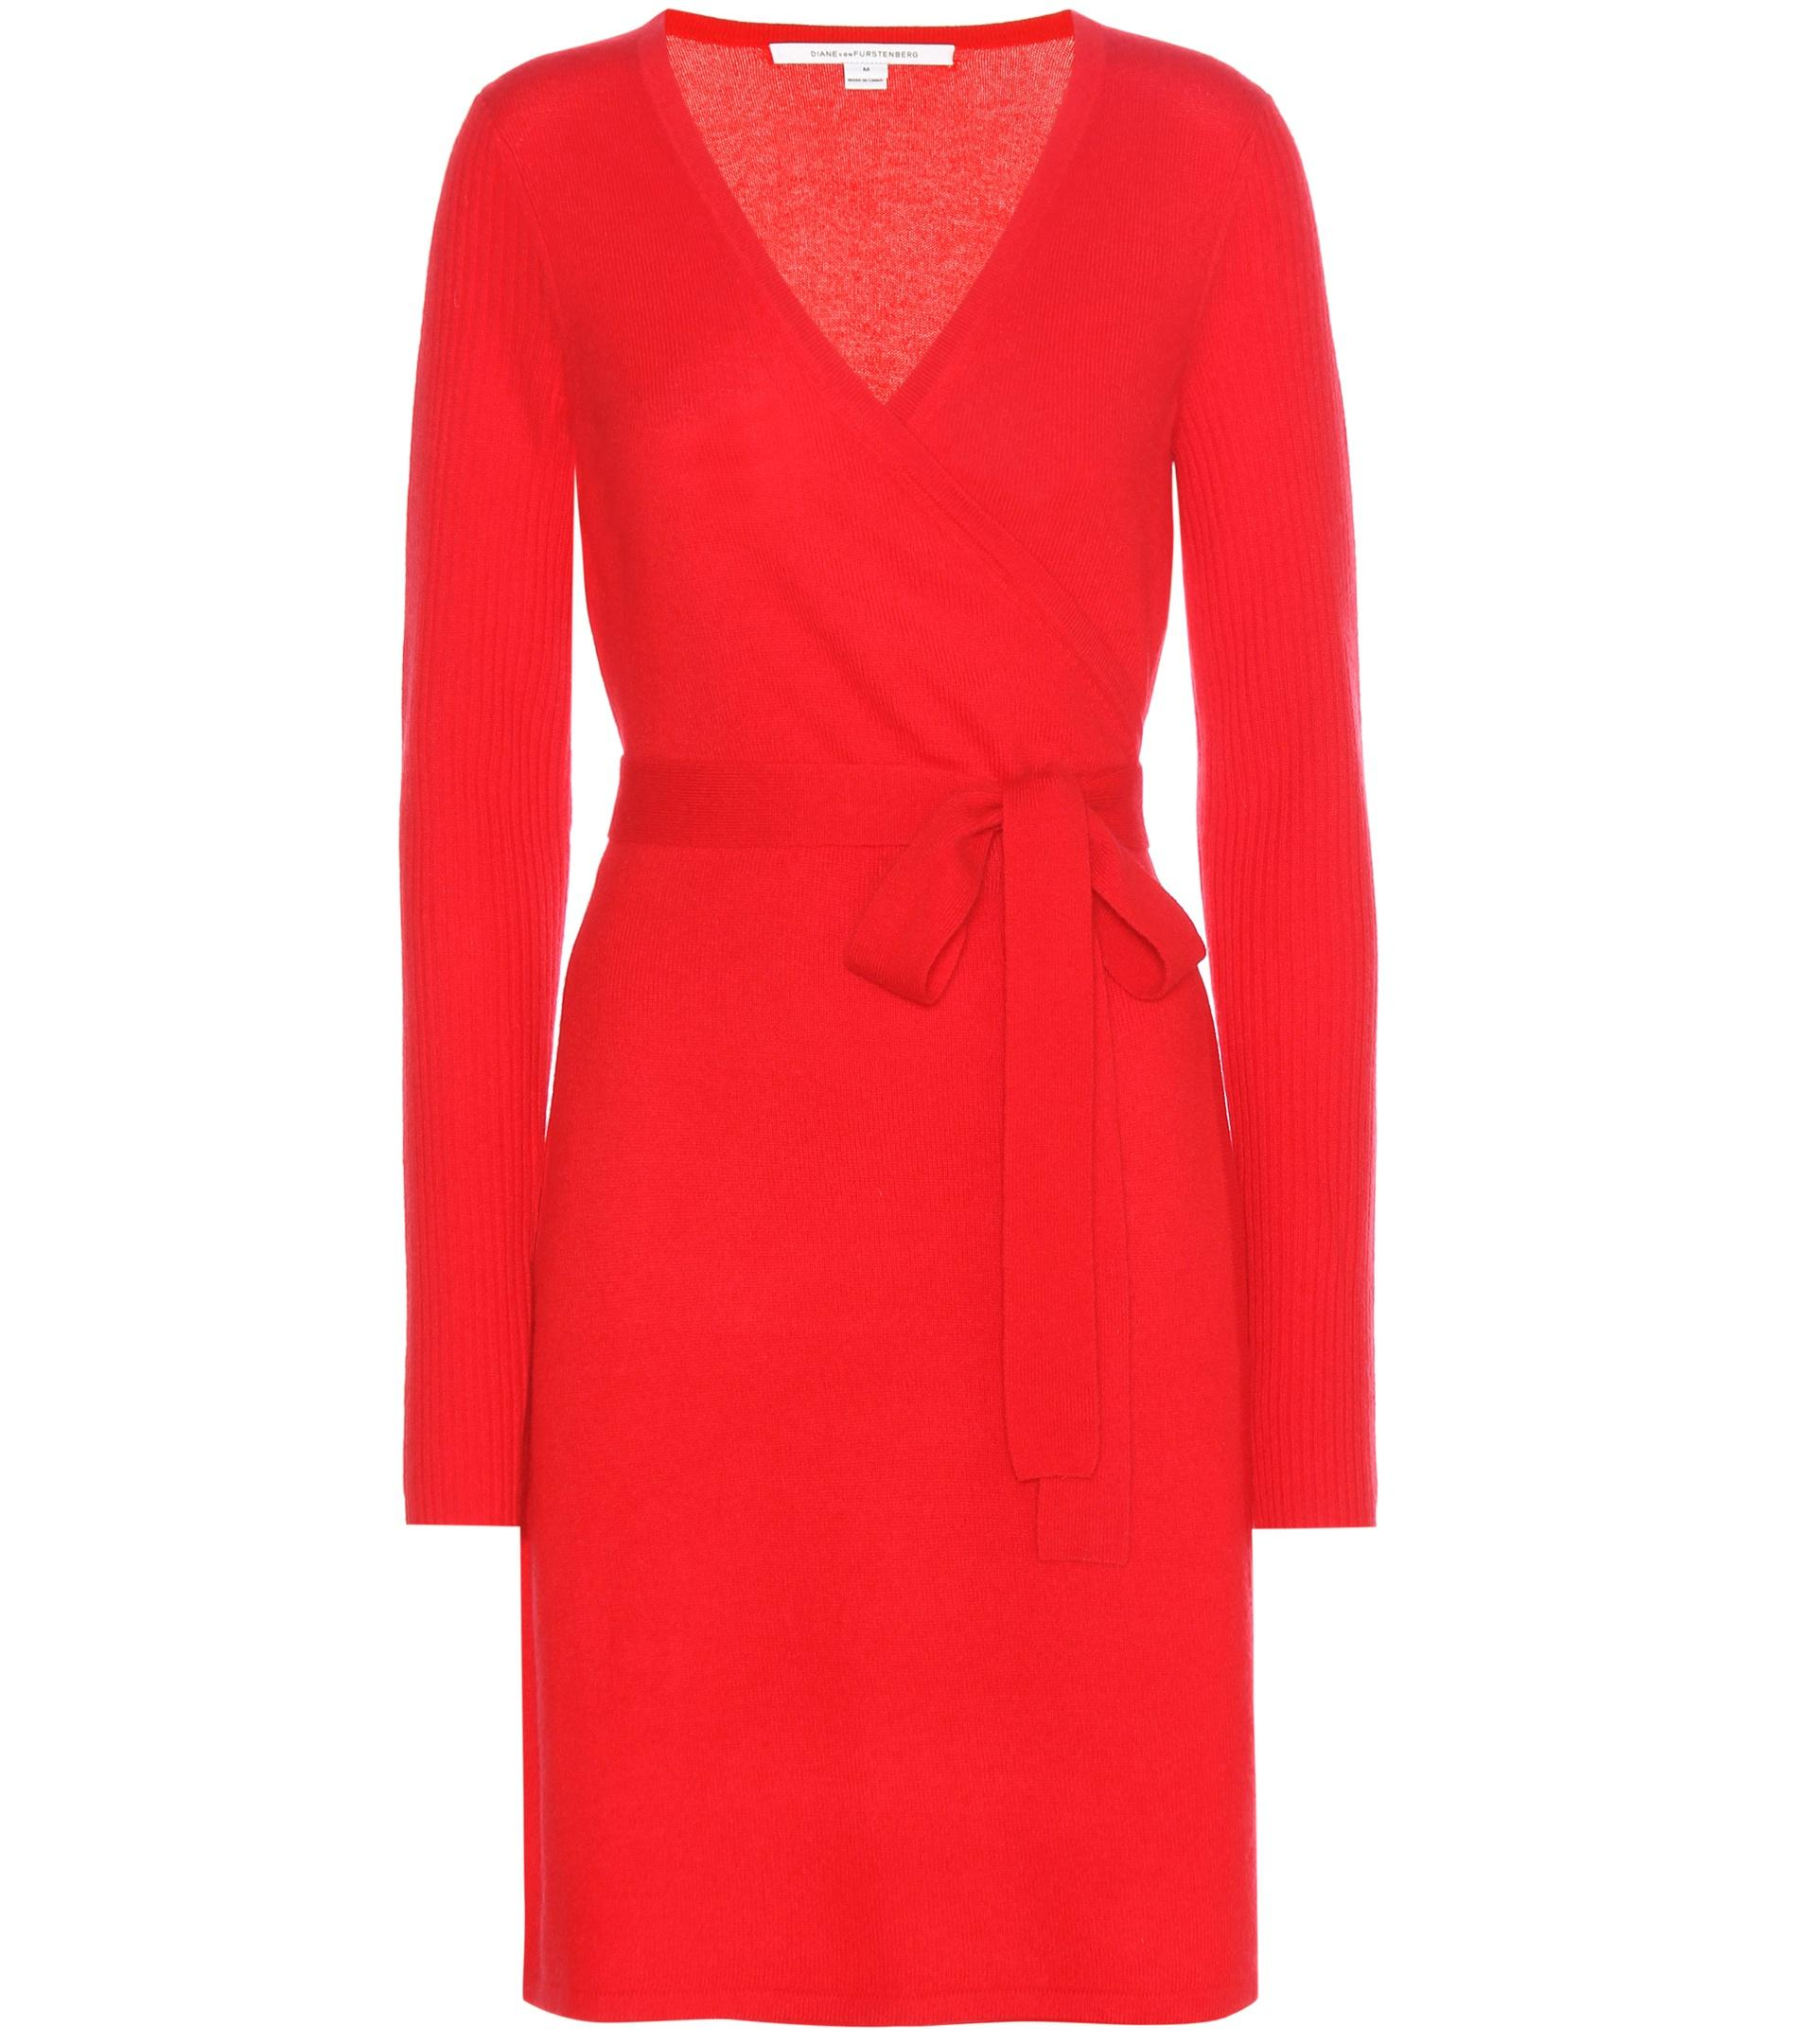 Ginia Cashmere Gowns Wrap Gown: Diane Von Furstenberg Kerry Wool And Cashmere Wrap Dress